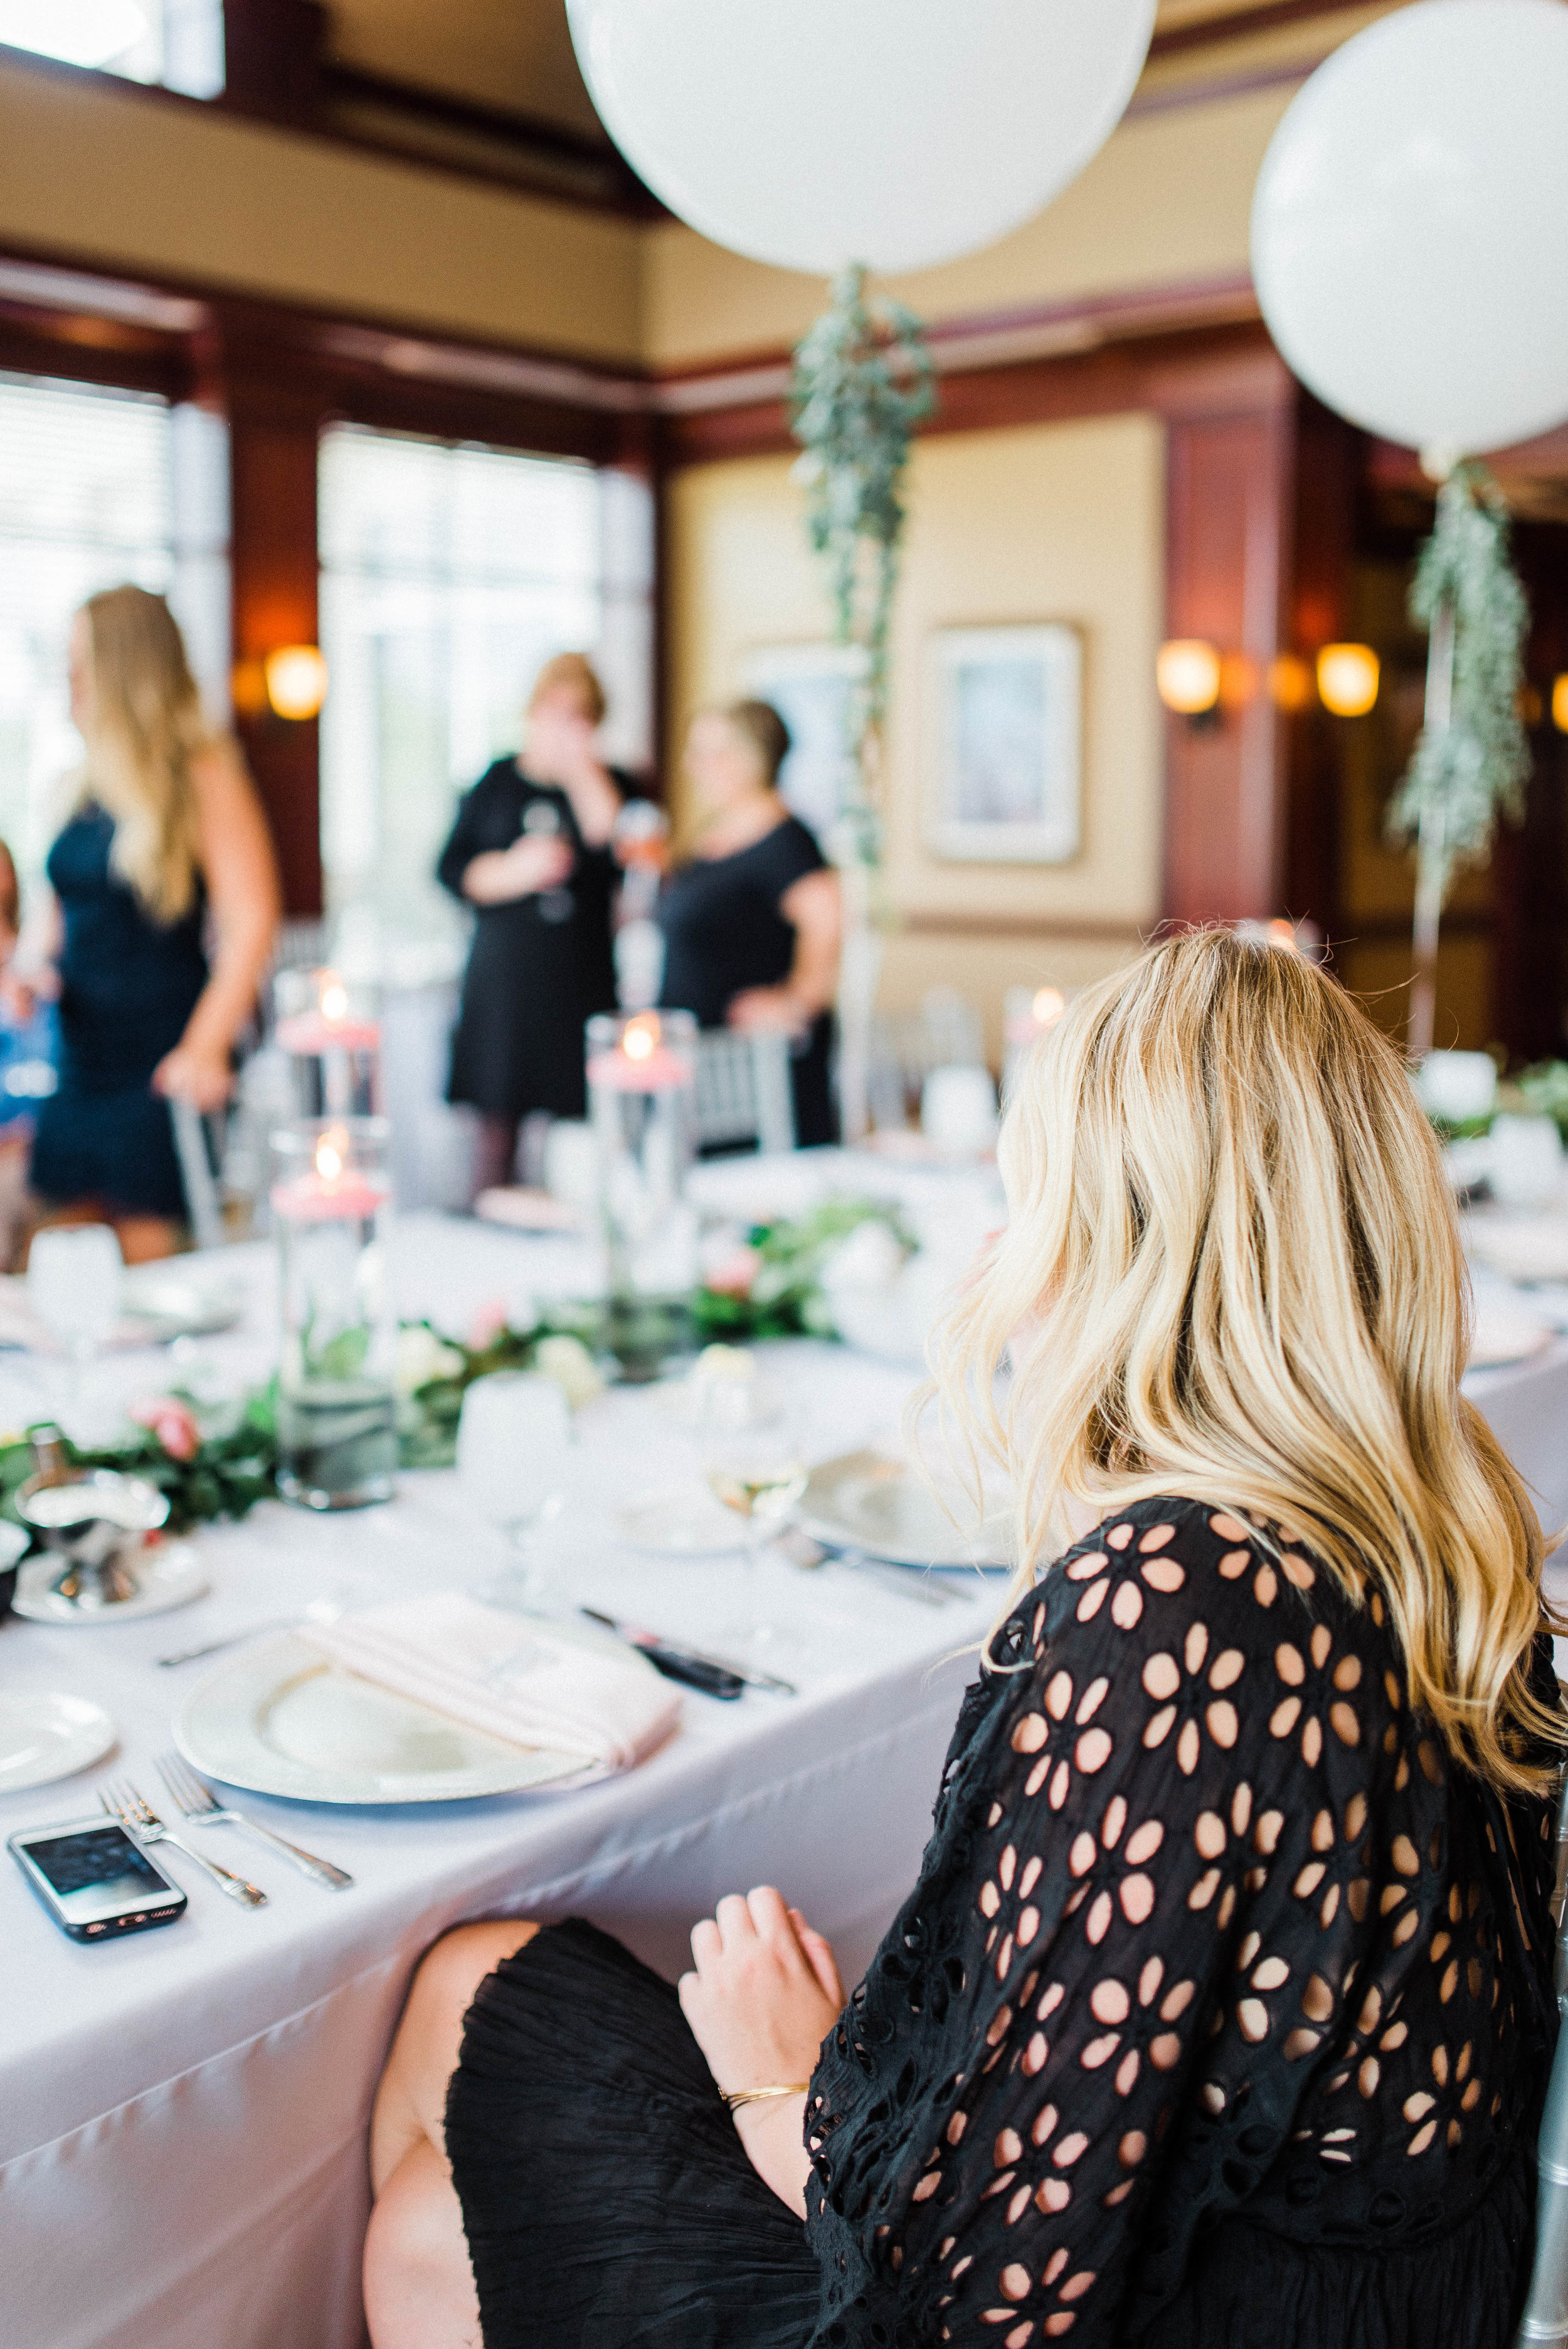 Lyndsey's Enchanting Bridal Shower at Bridgewater Country Club in Carmel, IN | Indianapolis Destination Wedding Photographers